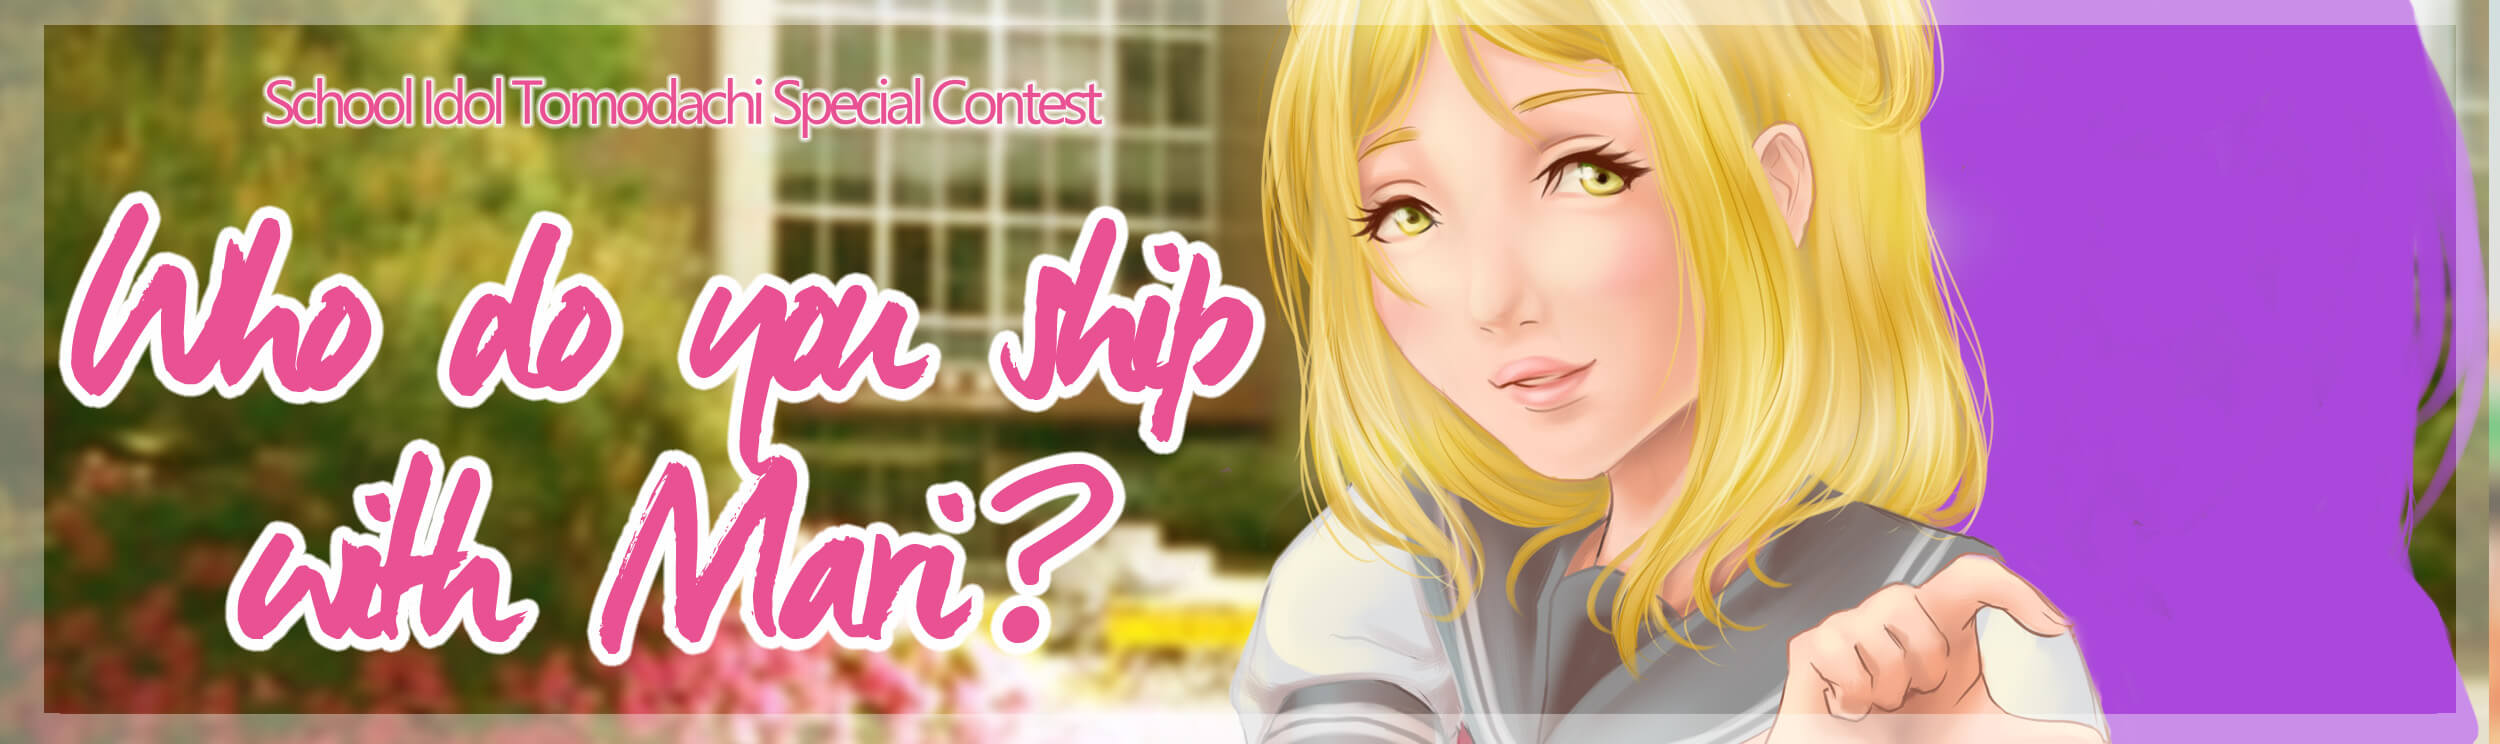 Who do you ship with Mari?